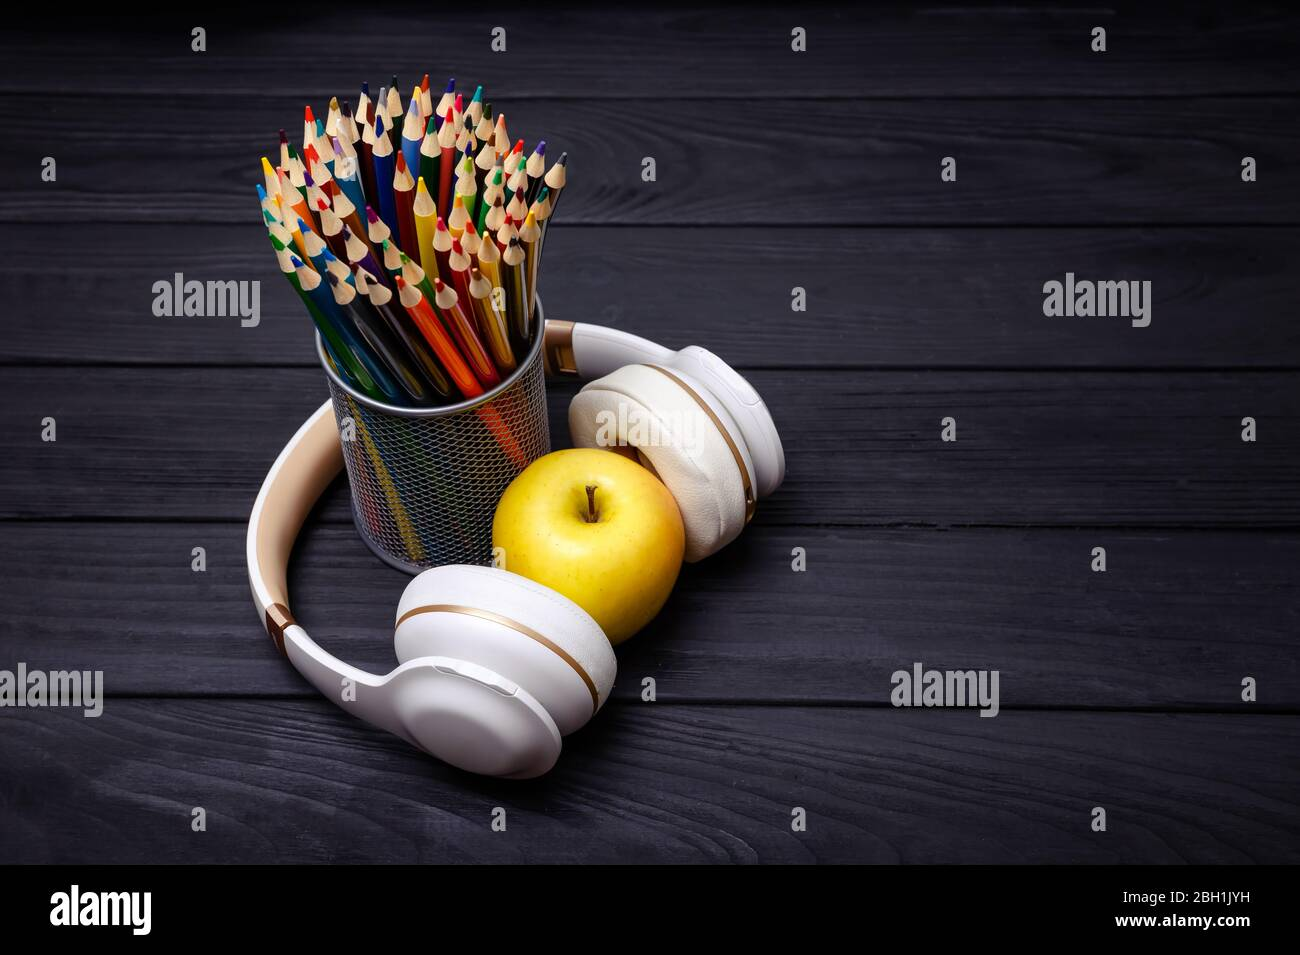 Colorful pencils and headphones on black wooden background. Workplace Stock Photo